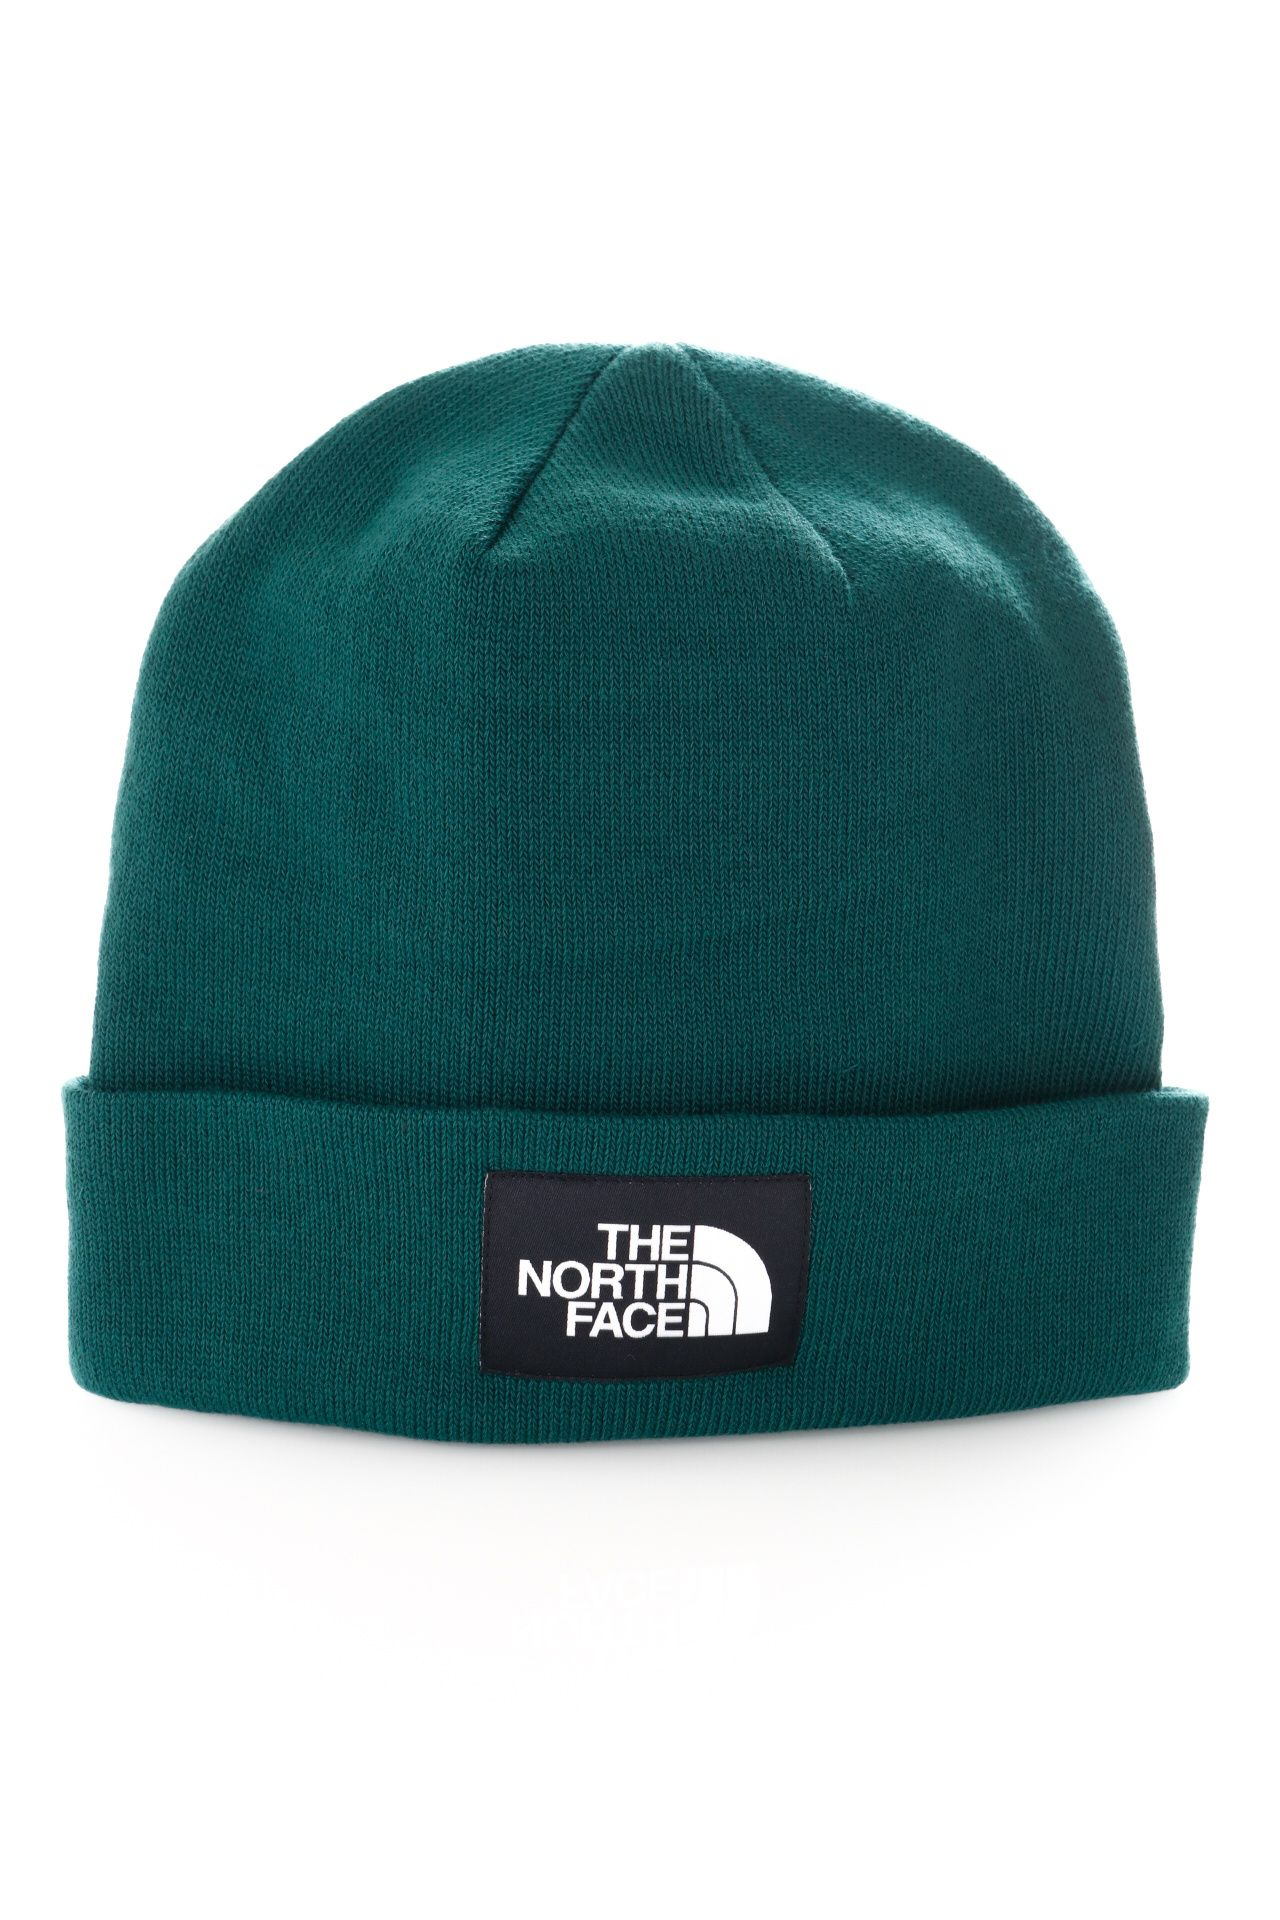 Afbeelding van The North Face Muts Dock Worker Recycled Evergreen NF0A3FNTNL11